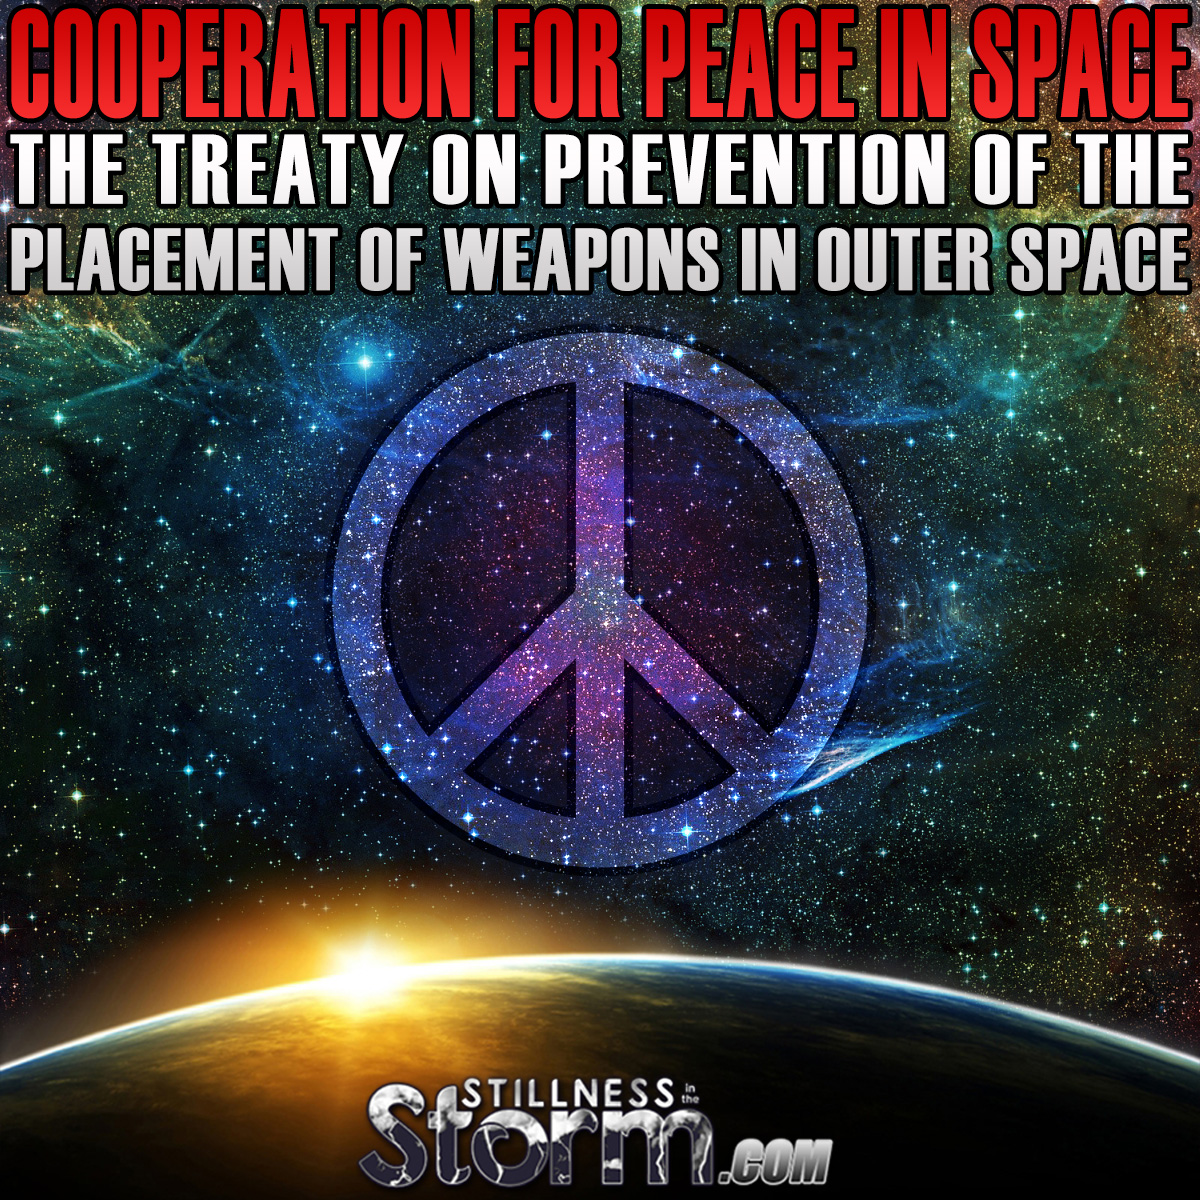 Outer space treaty essays